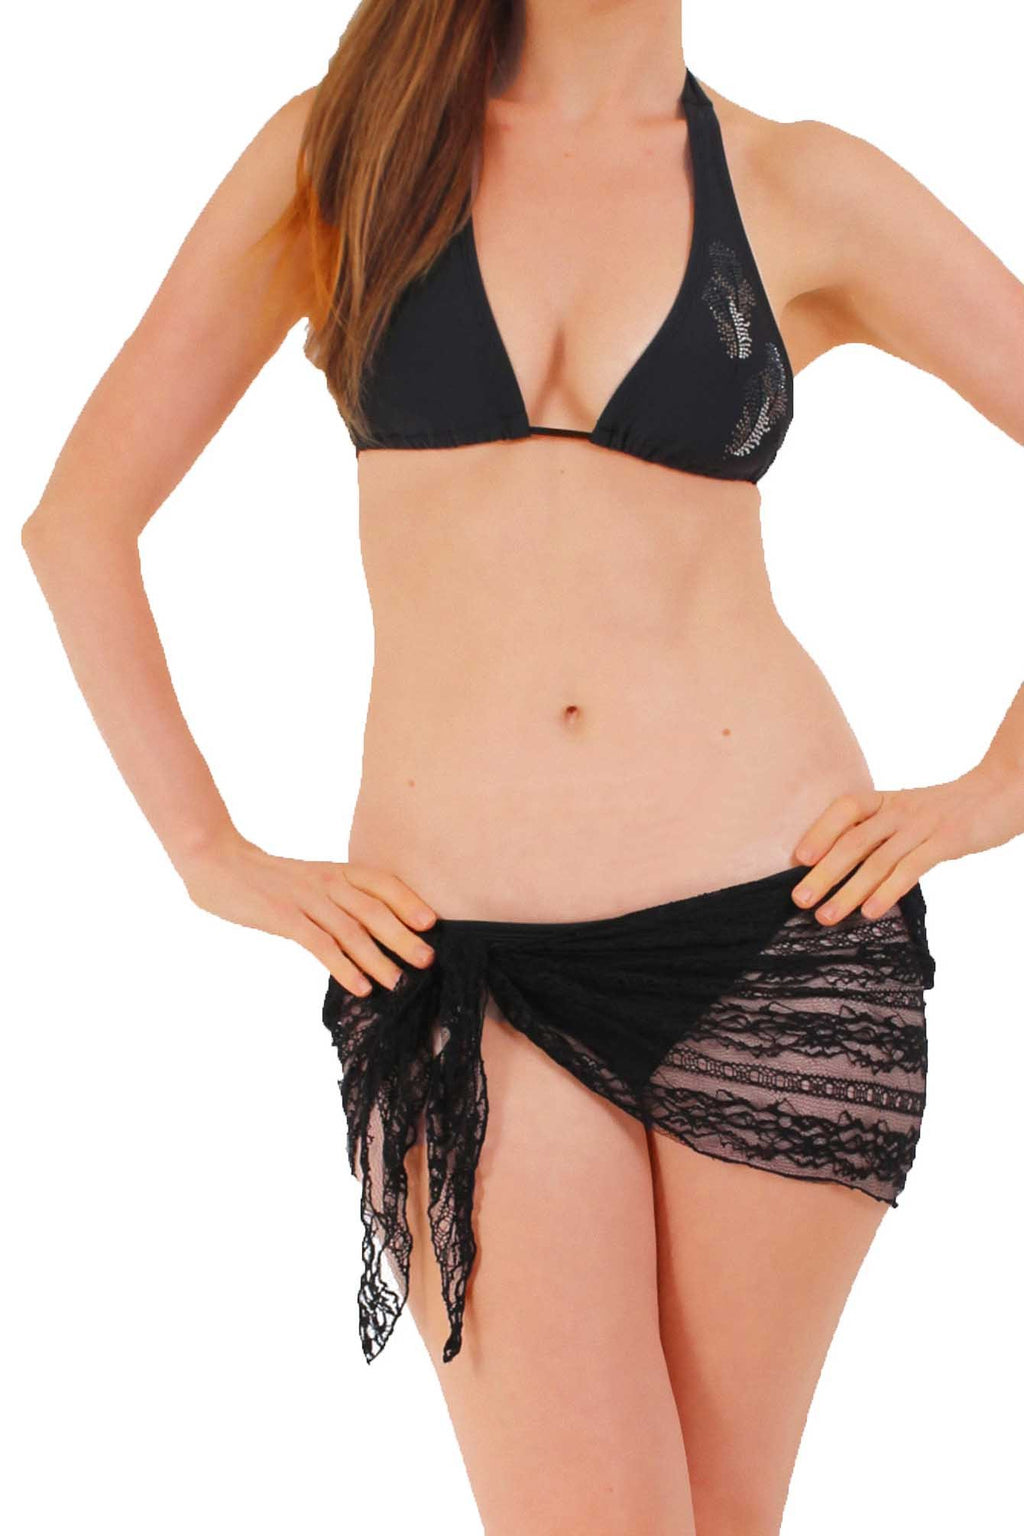 Black Gorgeous LACE Sarong Cover-up Wrap Pareo: MINI Length